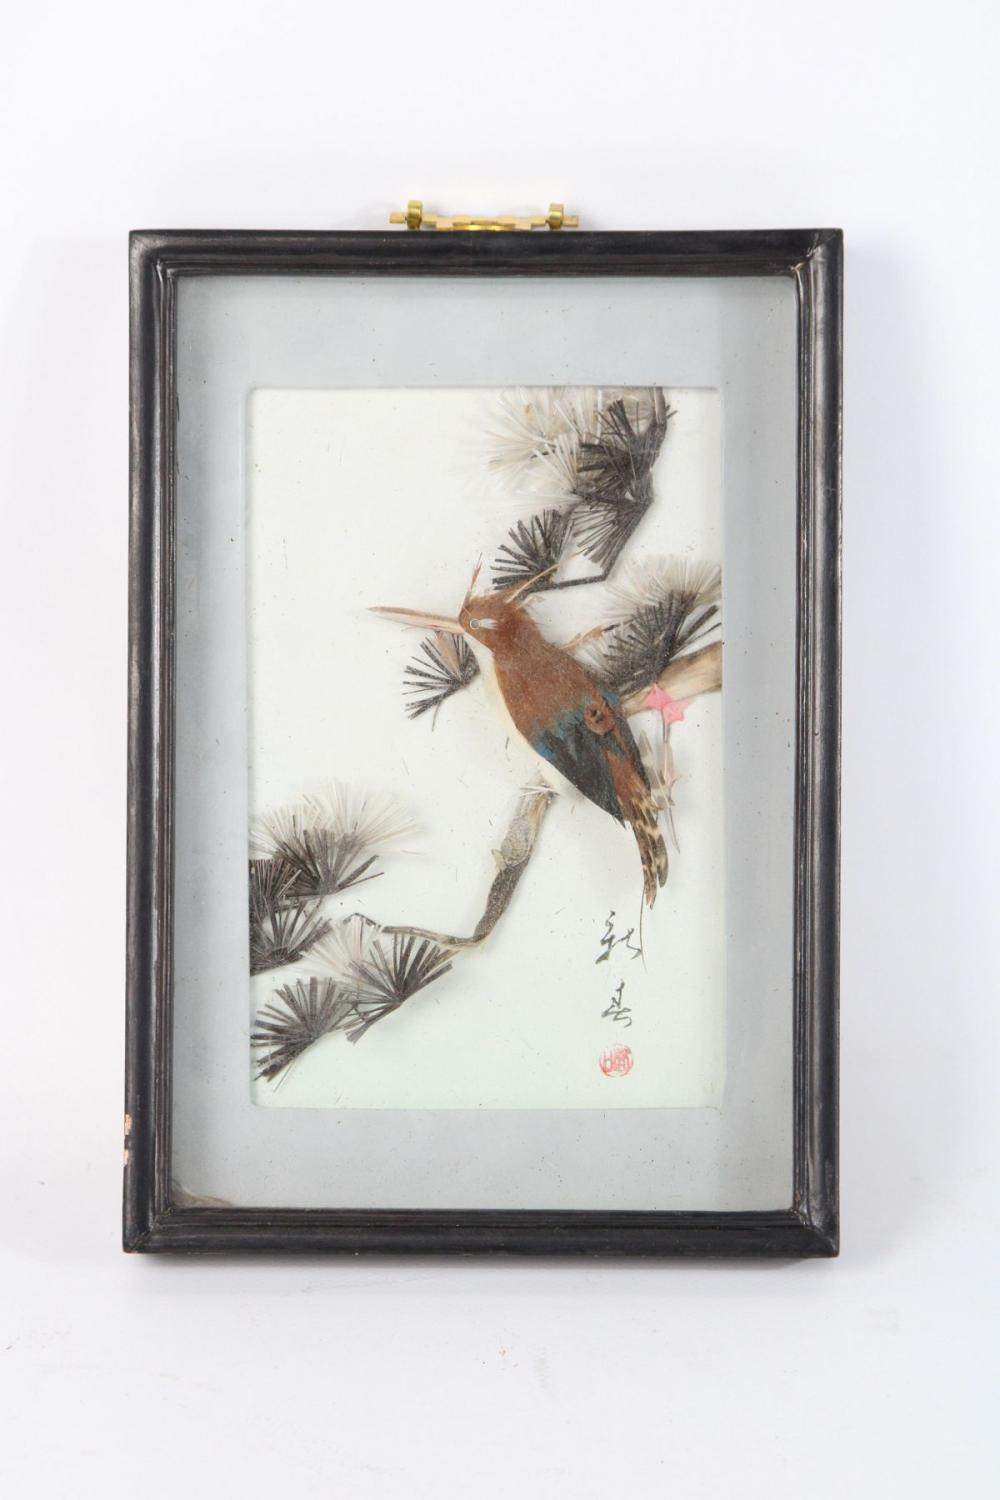 Framed chinese Bird Picture 26cm x 18cm